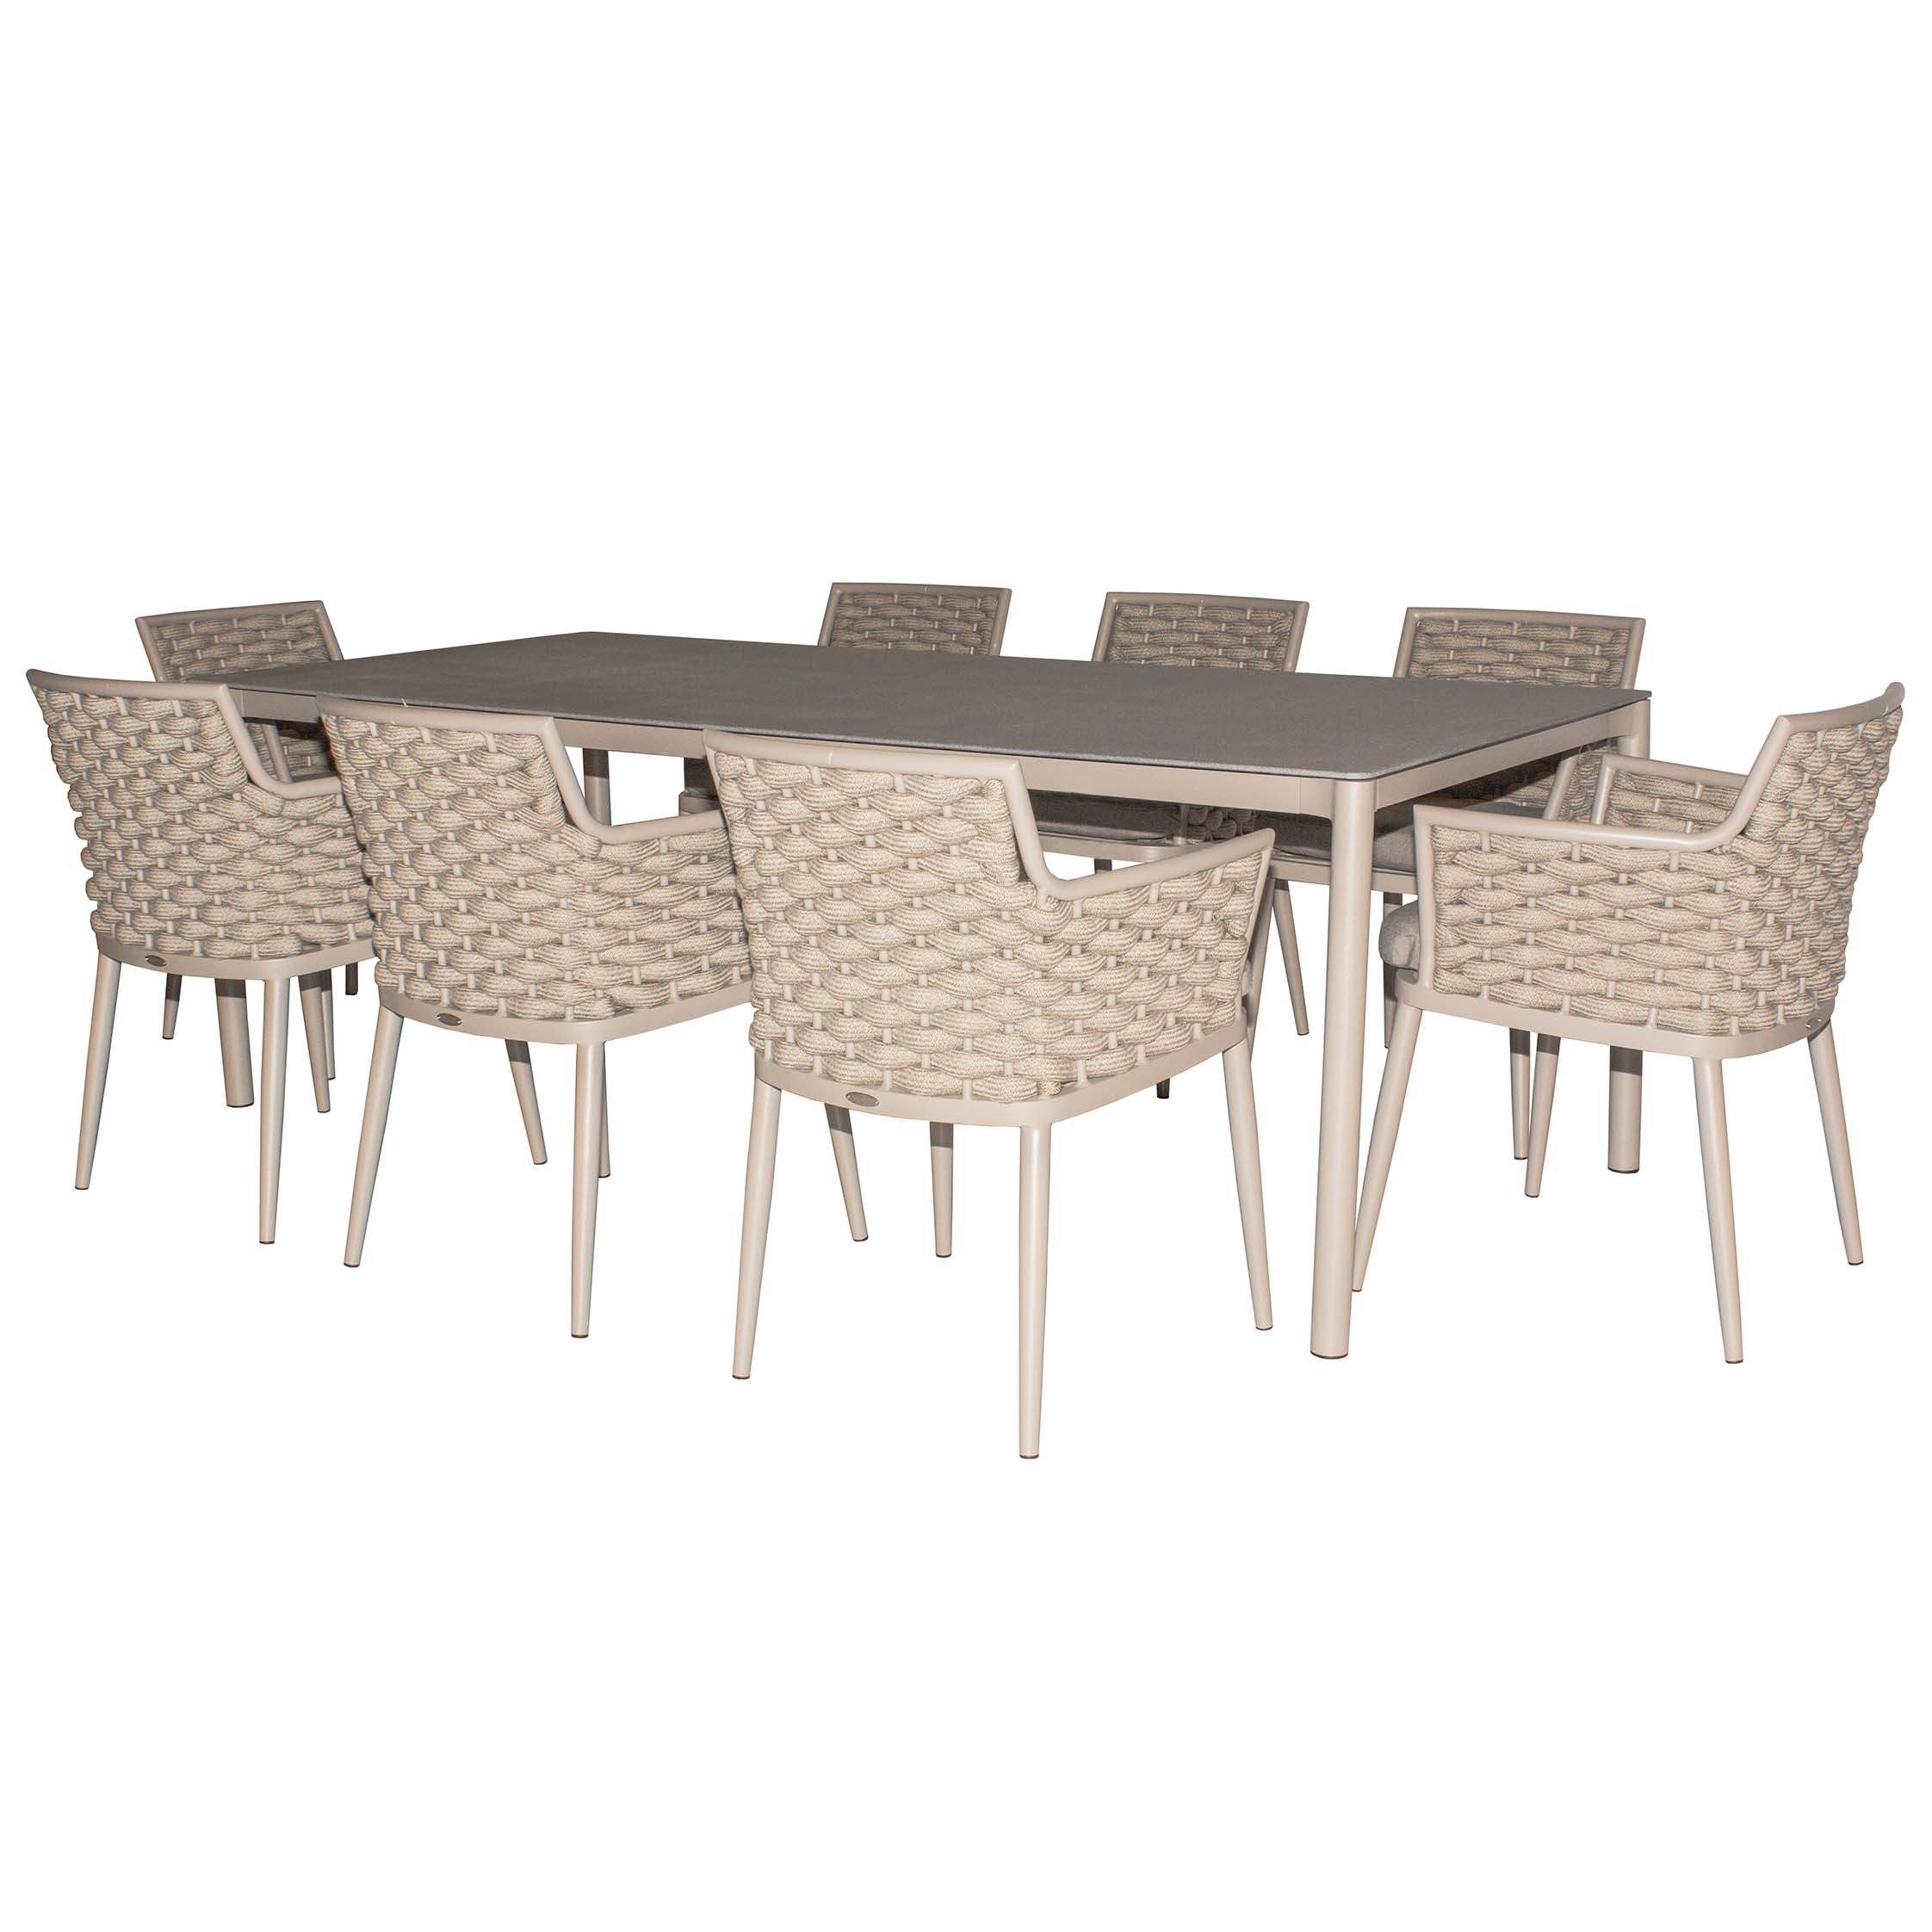 Leon Dining Set 8 Seater | Patio Warehouse Within Latest Leon Dining Tables (View 6 of 20)